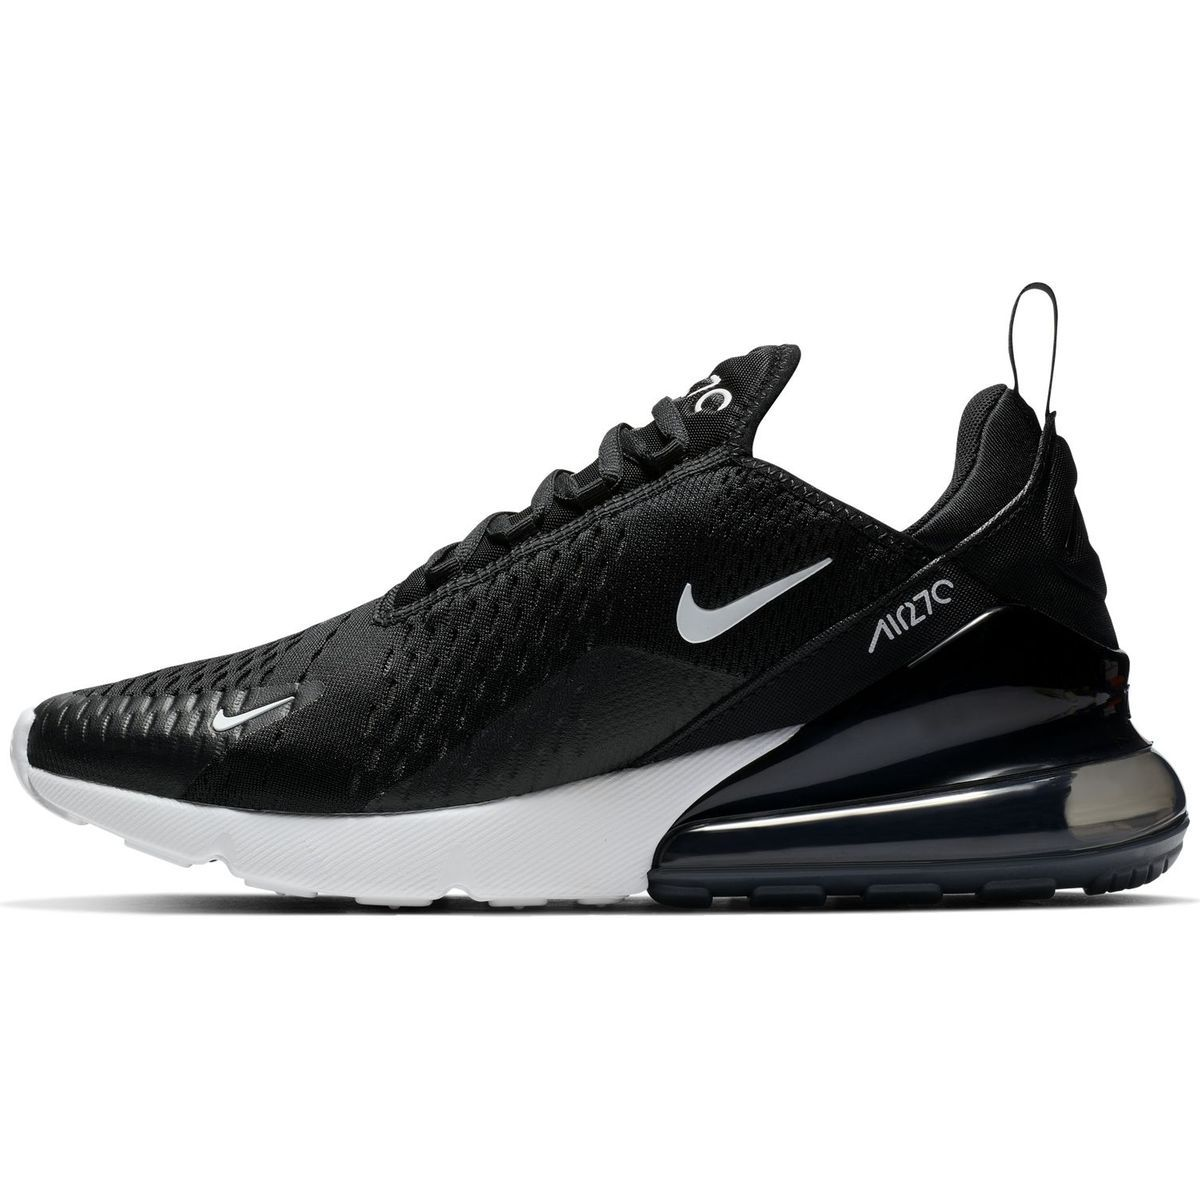 Wmns Baskets Air Max 270 Ah6789 Taille : 36;37 12;38